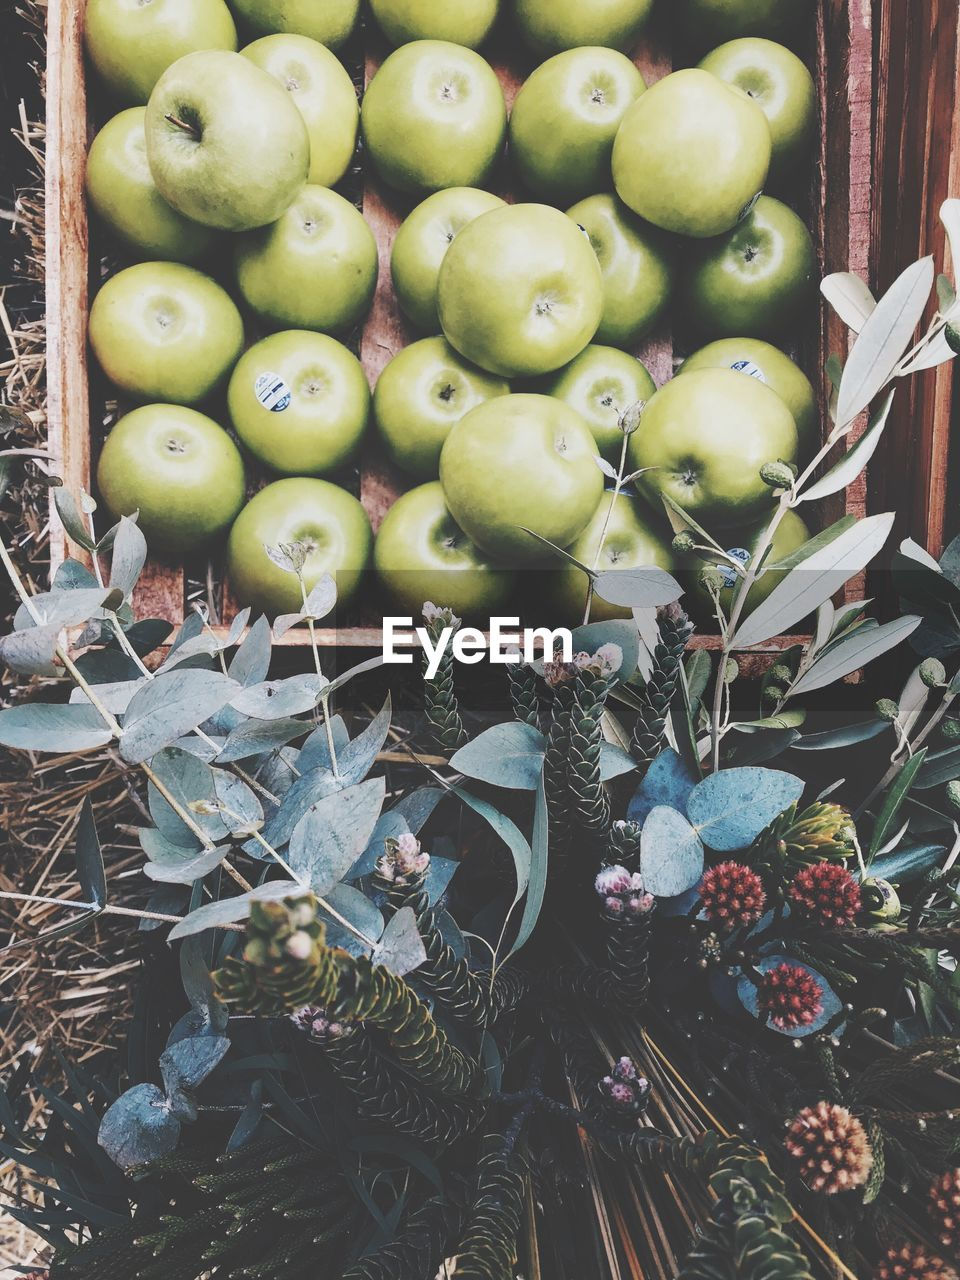 healthy eating, fruit, wellbeing, freshness, food and drink, food, large group of objects, no people, abundance, green color, day, close-up, apple - fruit, market, plant, high angle view, nature, outdoors, container, choice, apple, ripe